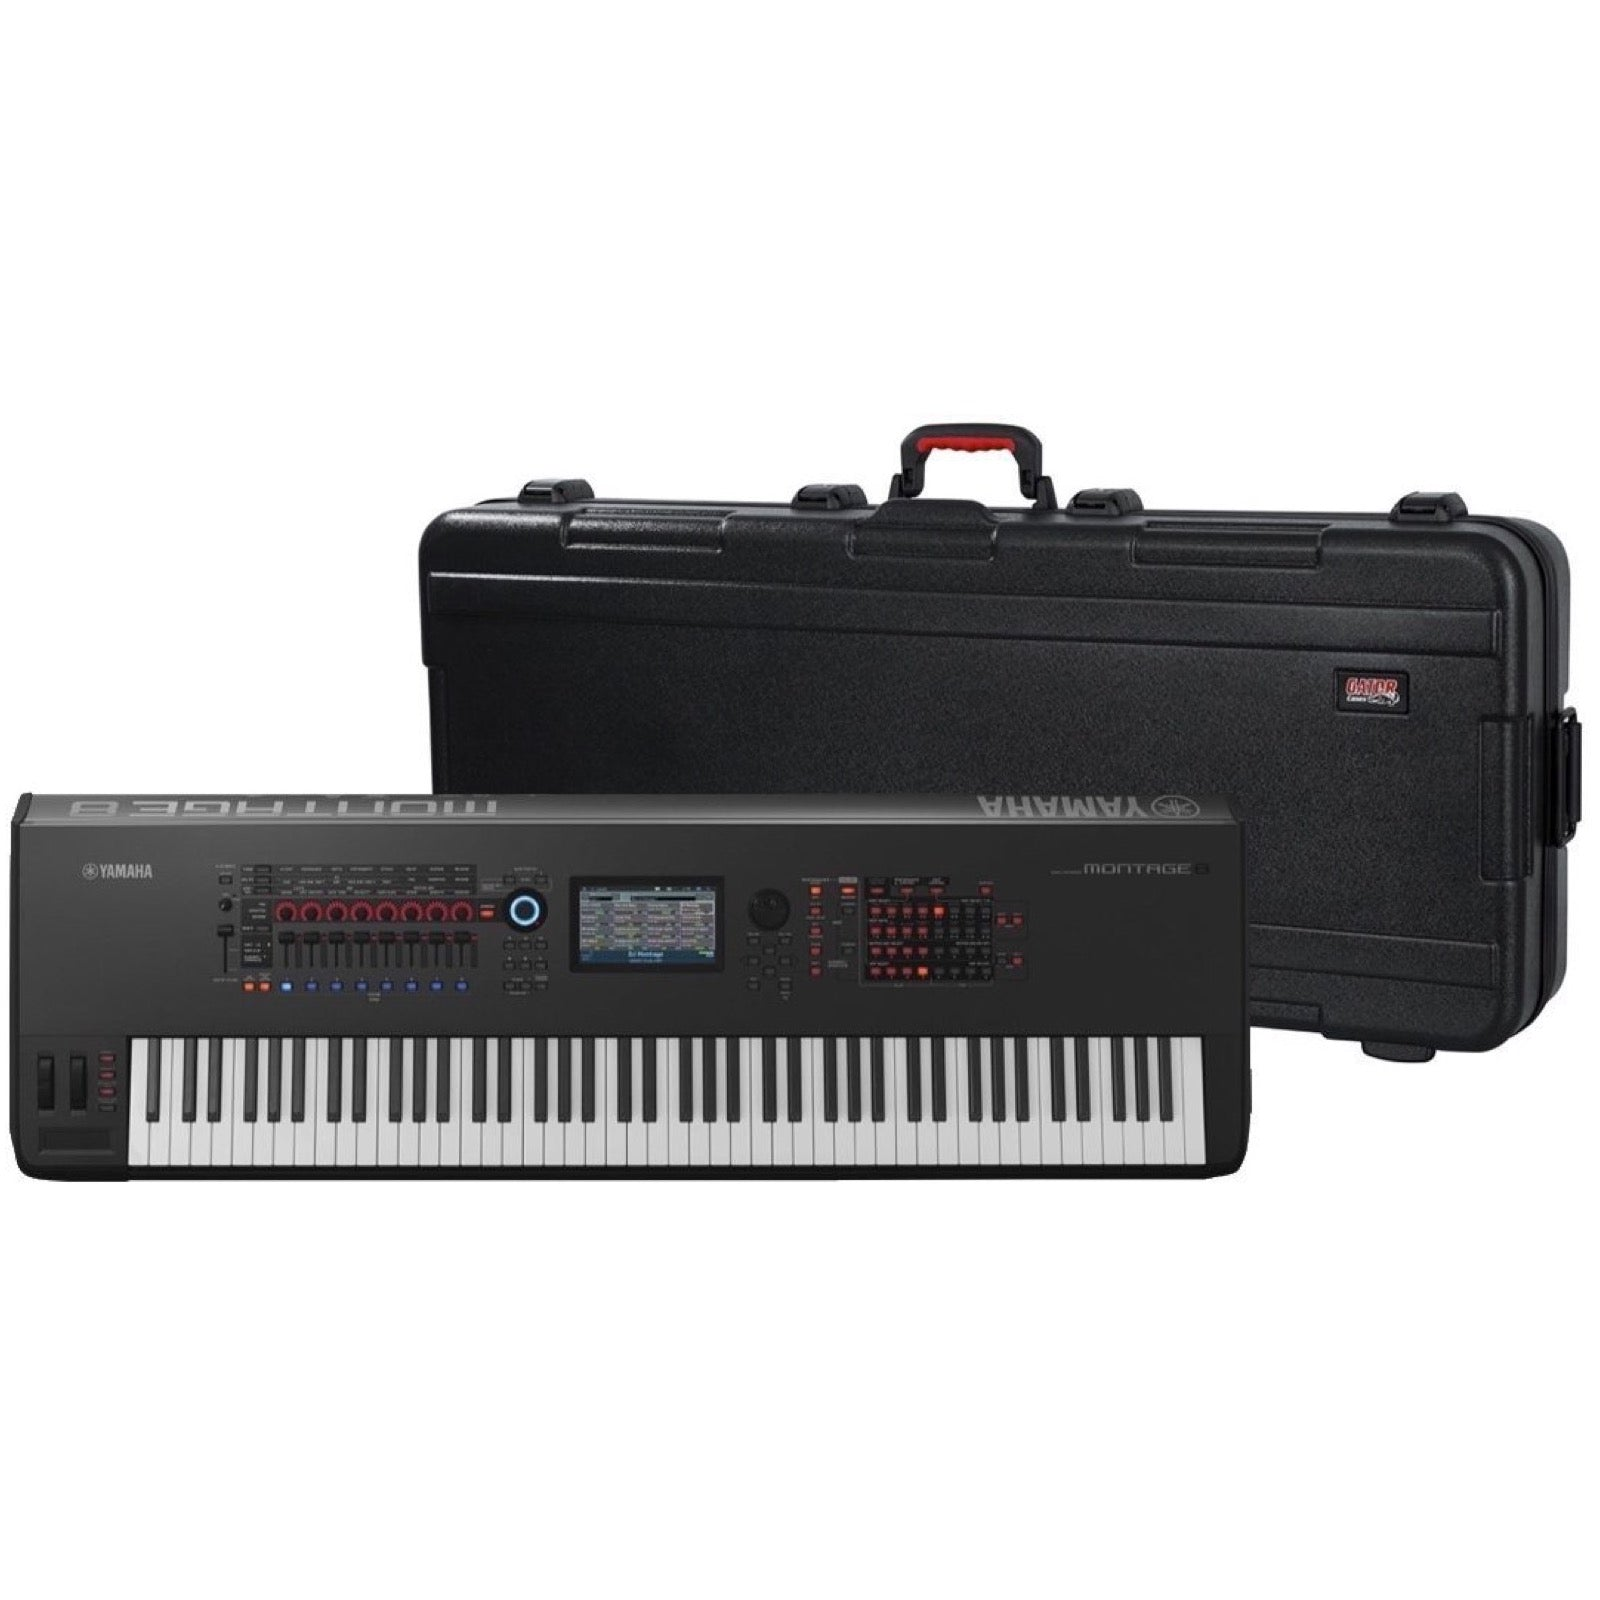 Yamaha Montage 8 Keyboard Synthesizer, 88-Key, Black, with Gator GTSA-KEY88 Keyboard Case